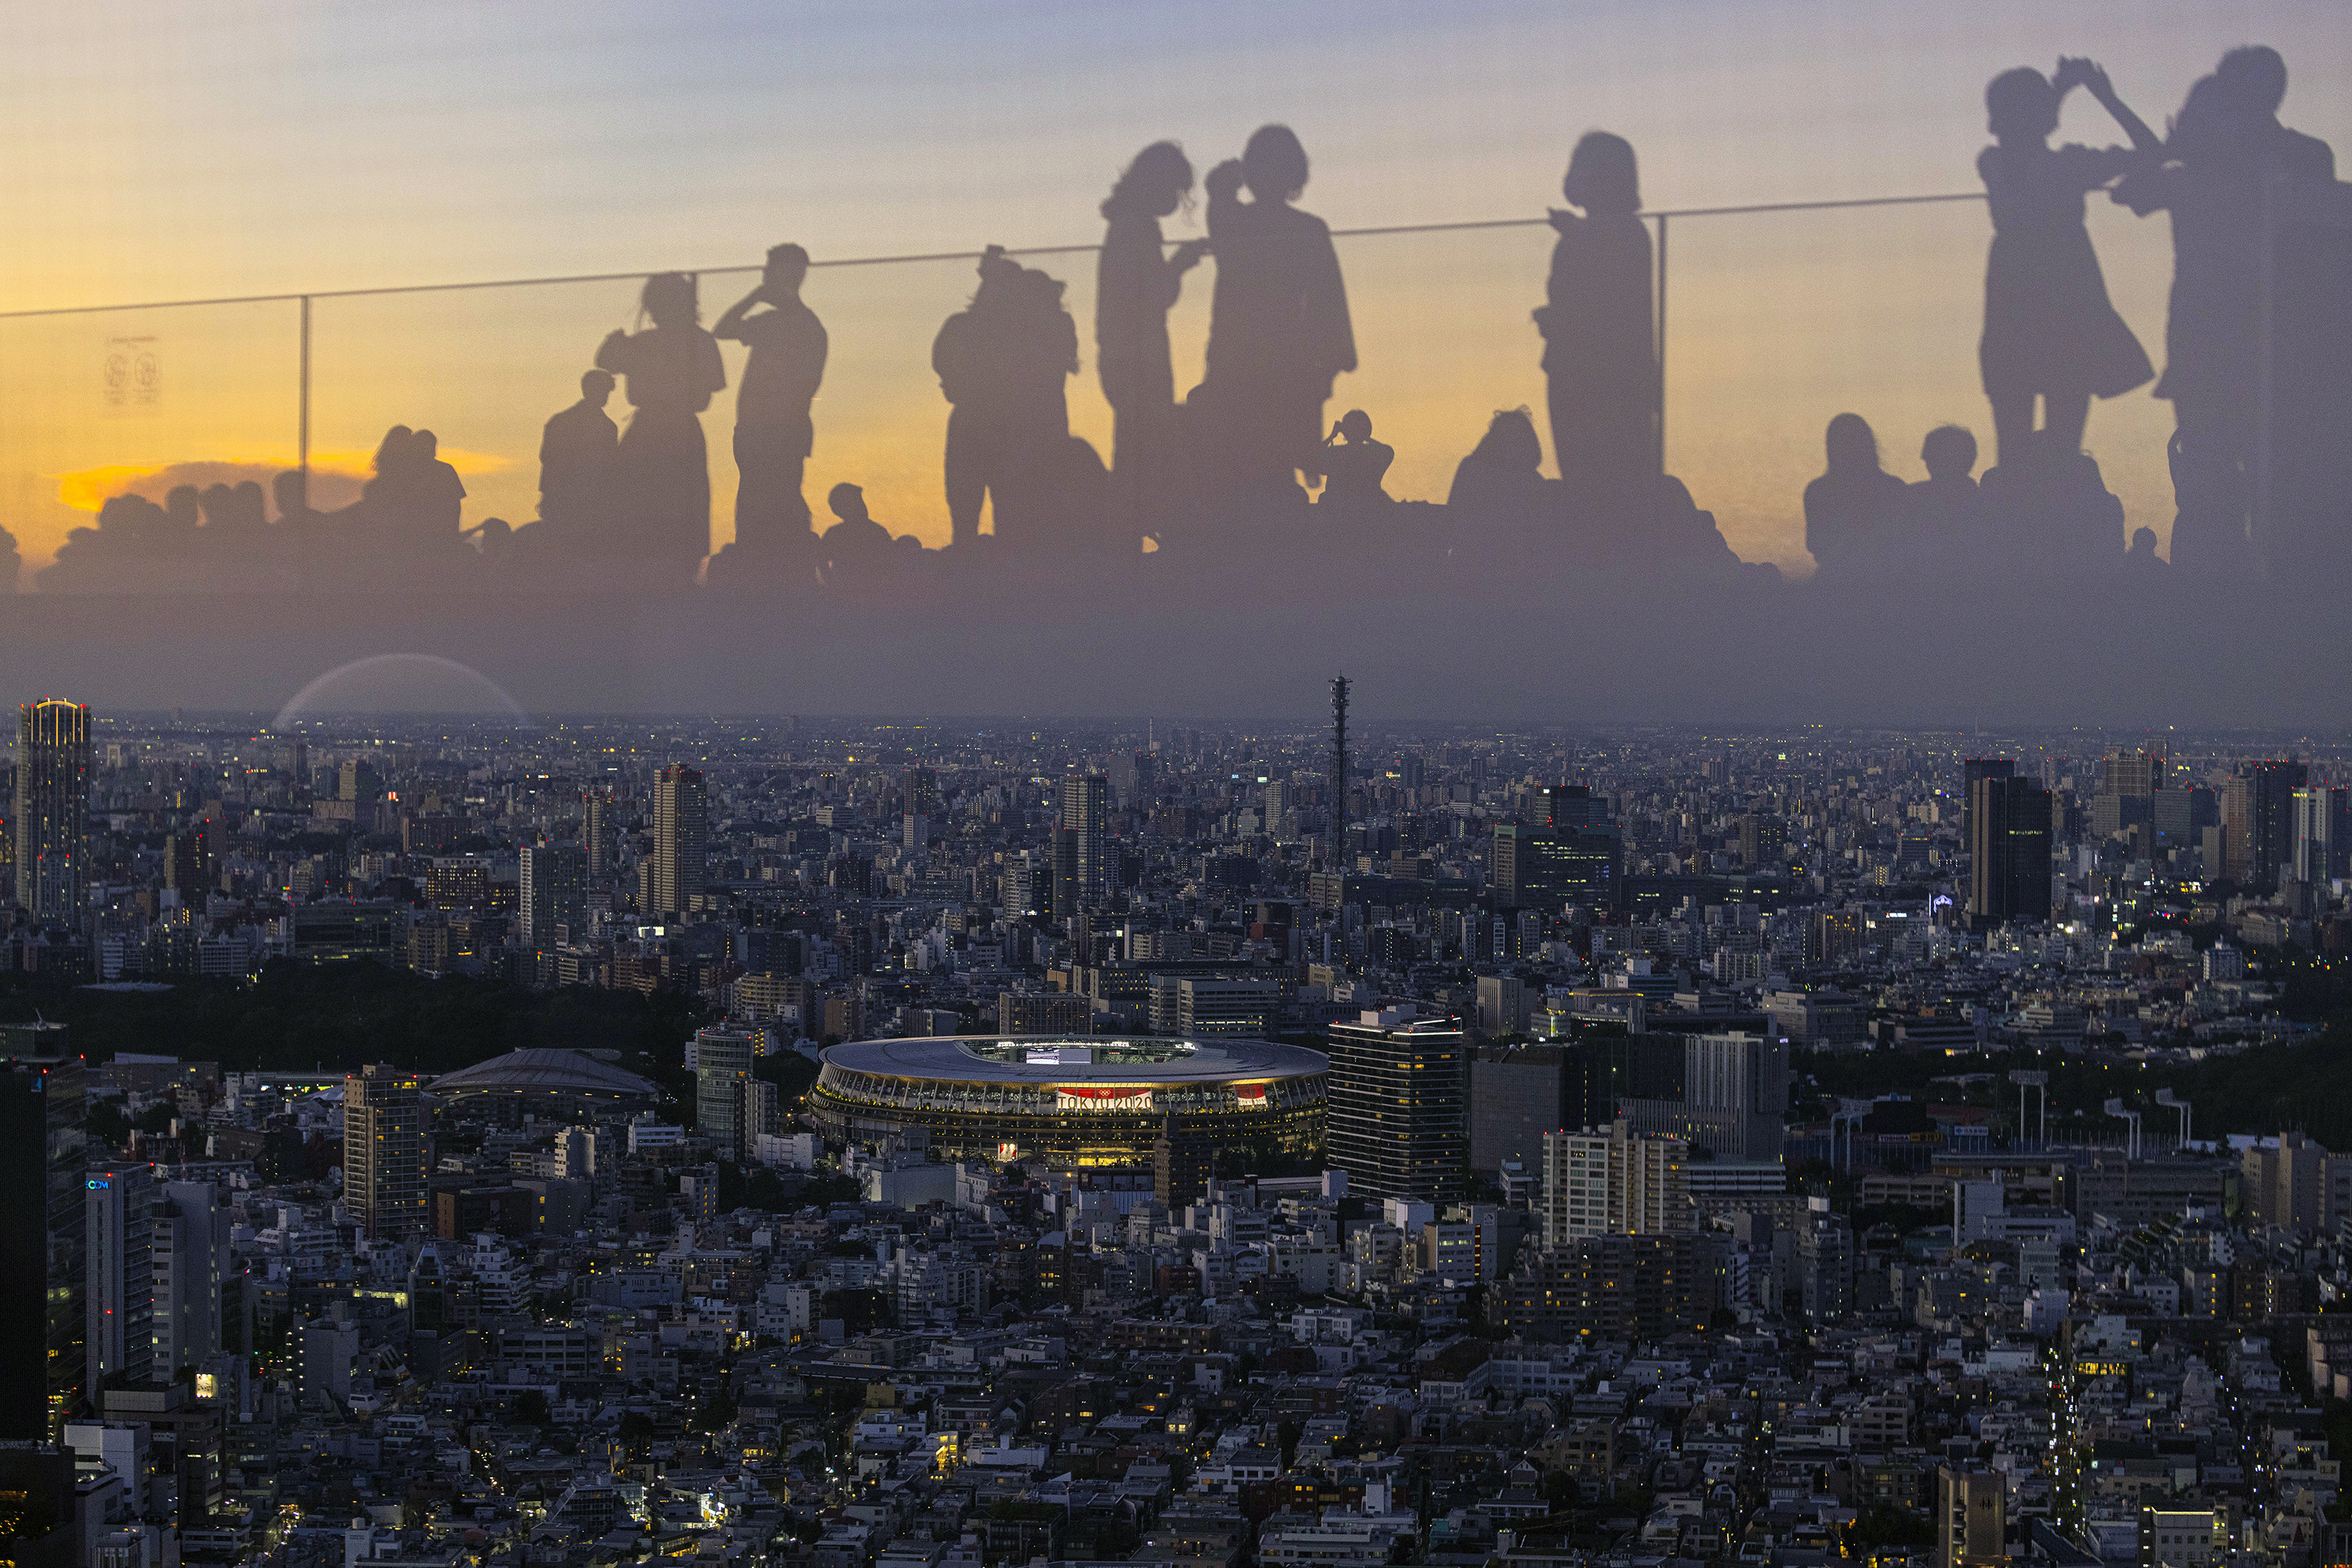 Tokyo's new National Stadium, as seen from the observation level of a nearby skyscraper with people reflected so that they appear on the skyline